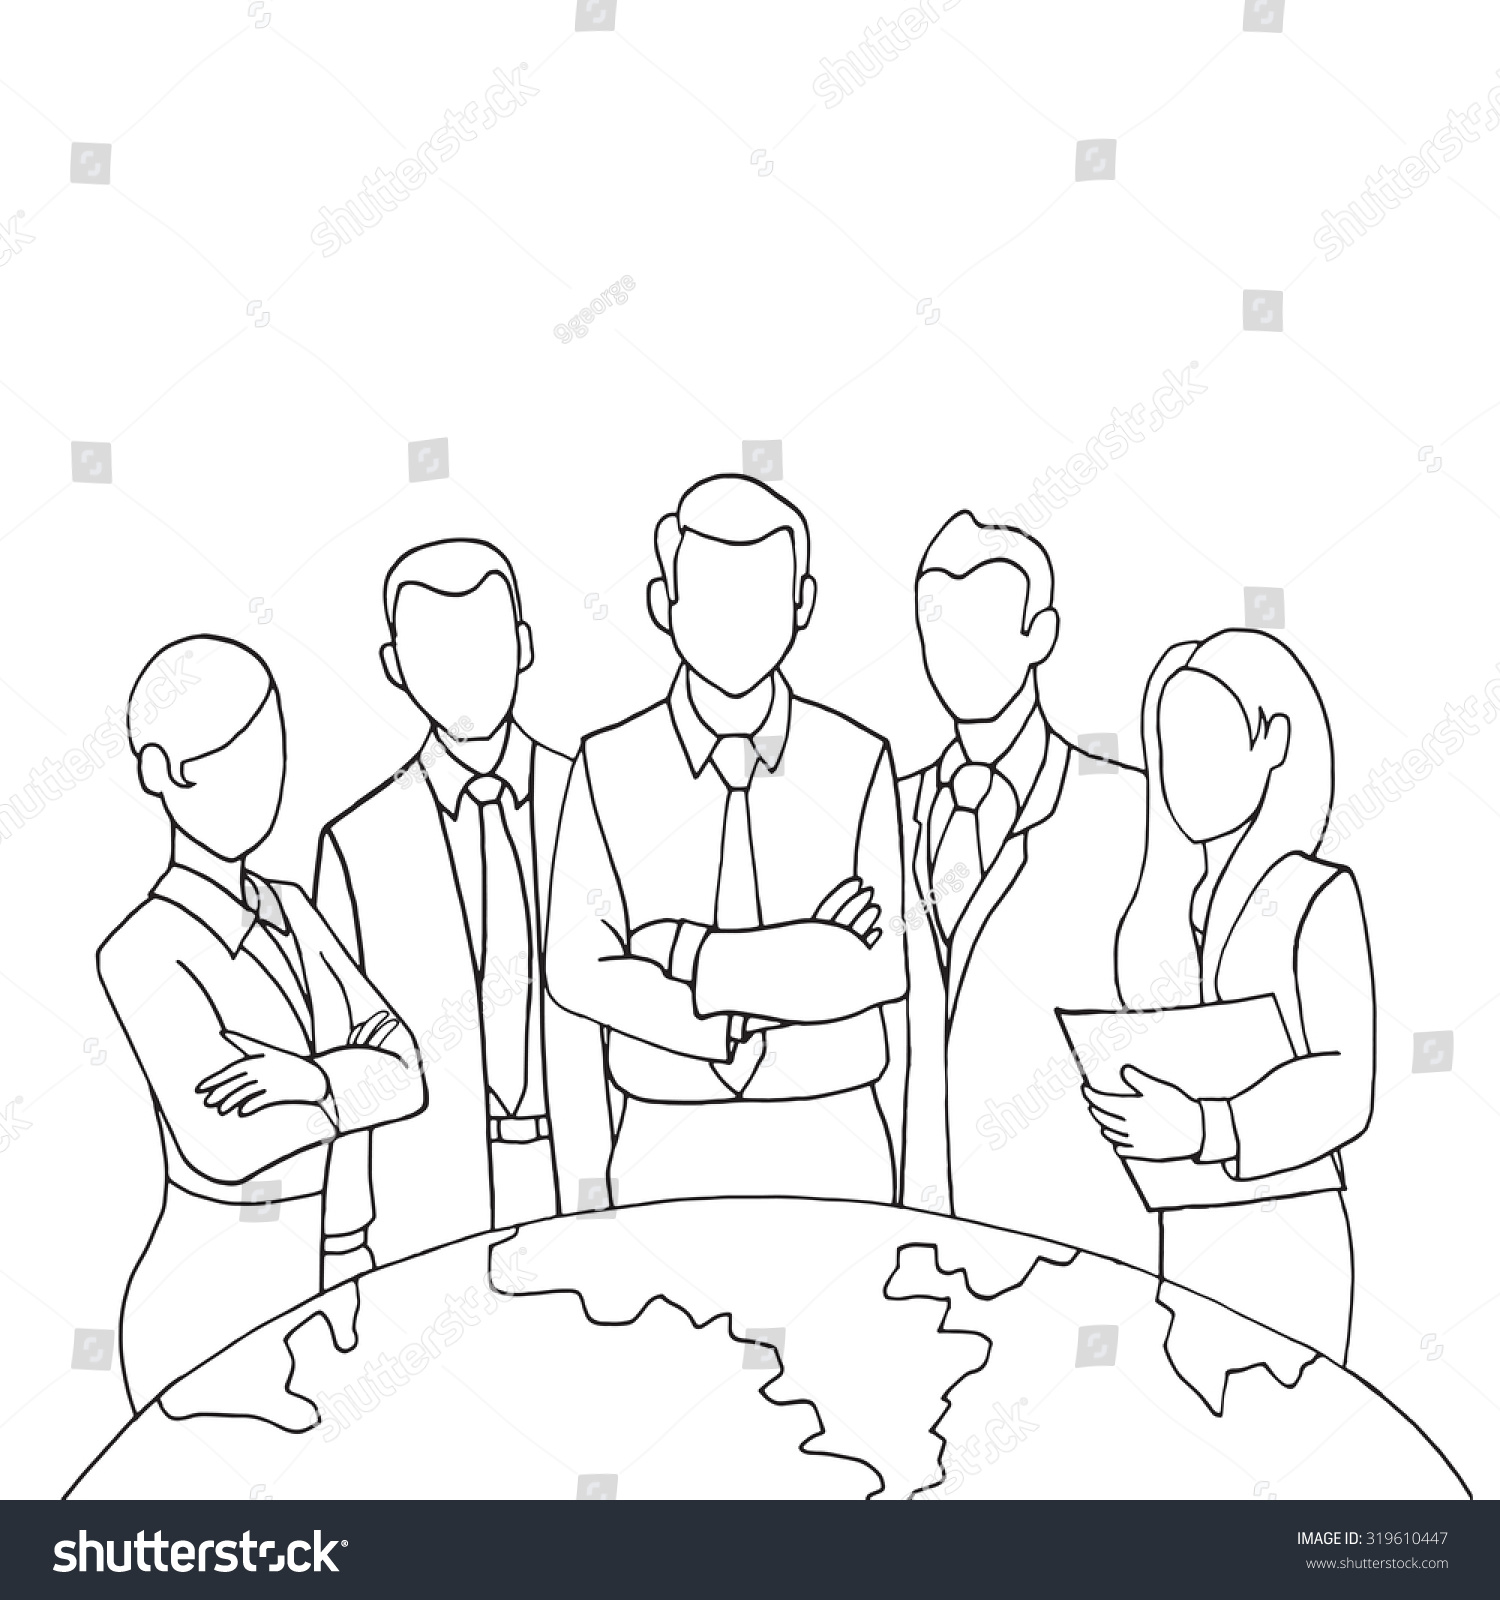 hand drawing successful team leader team stock vector 319610447 hand drawing successful team leader a team of successful executives led by a great and